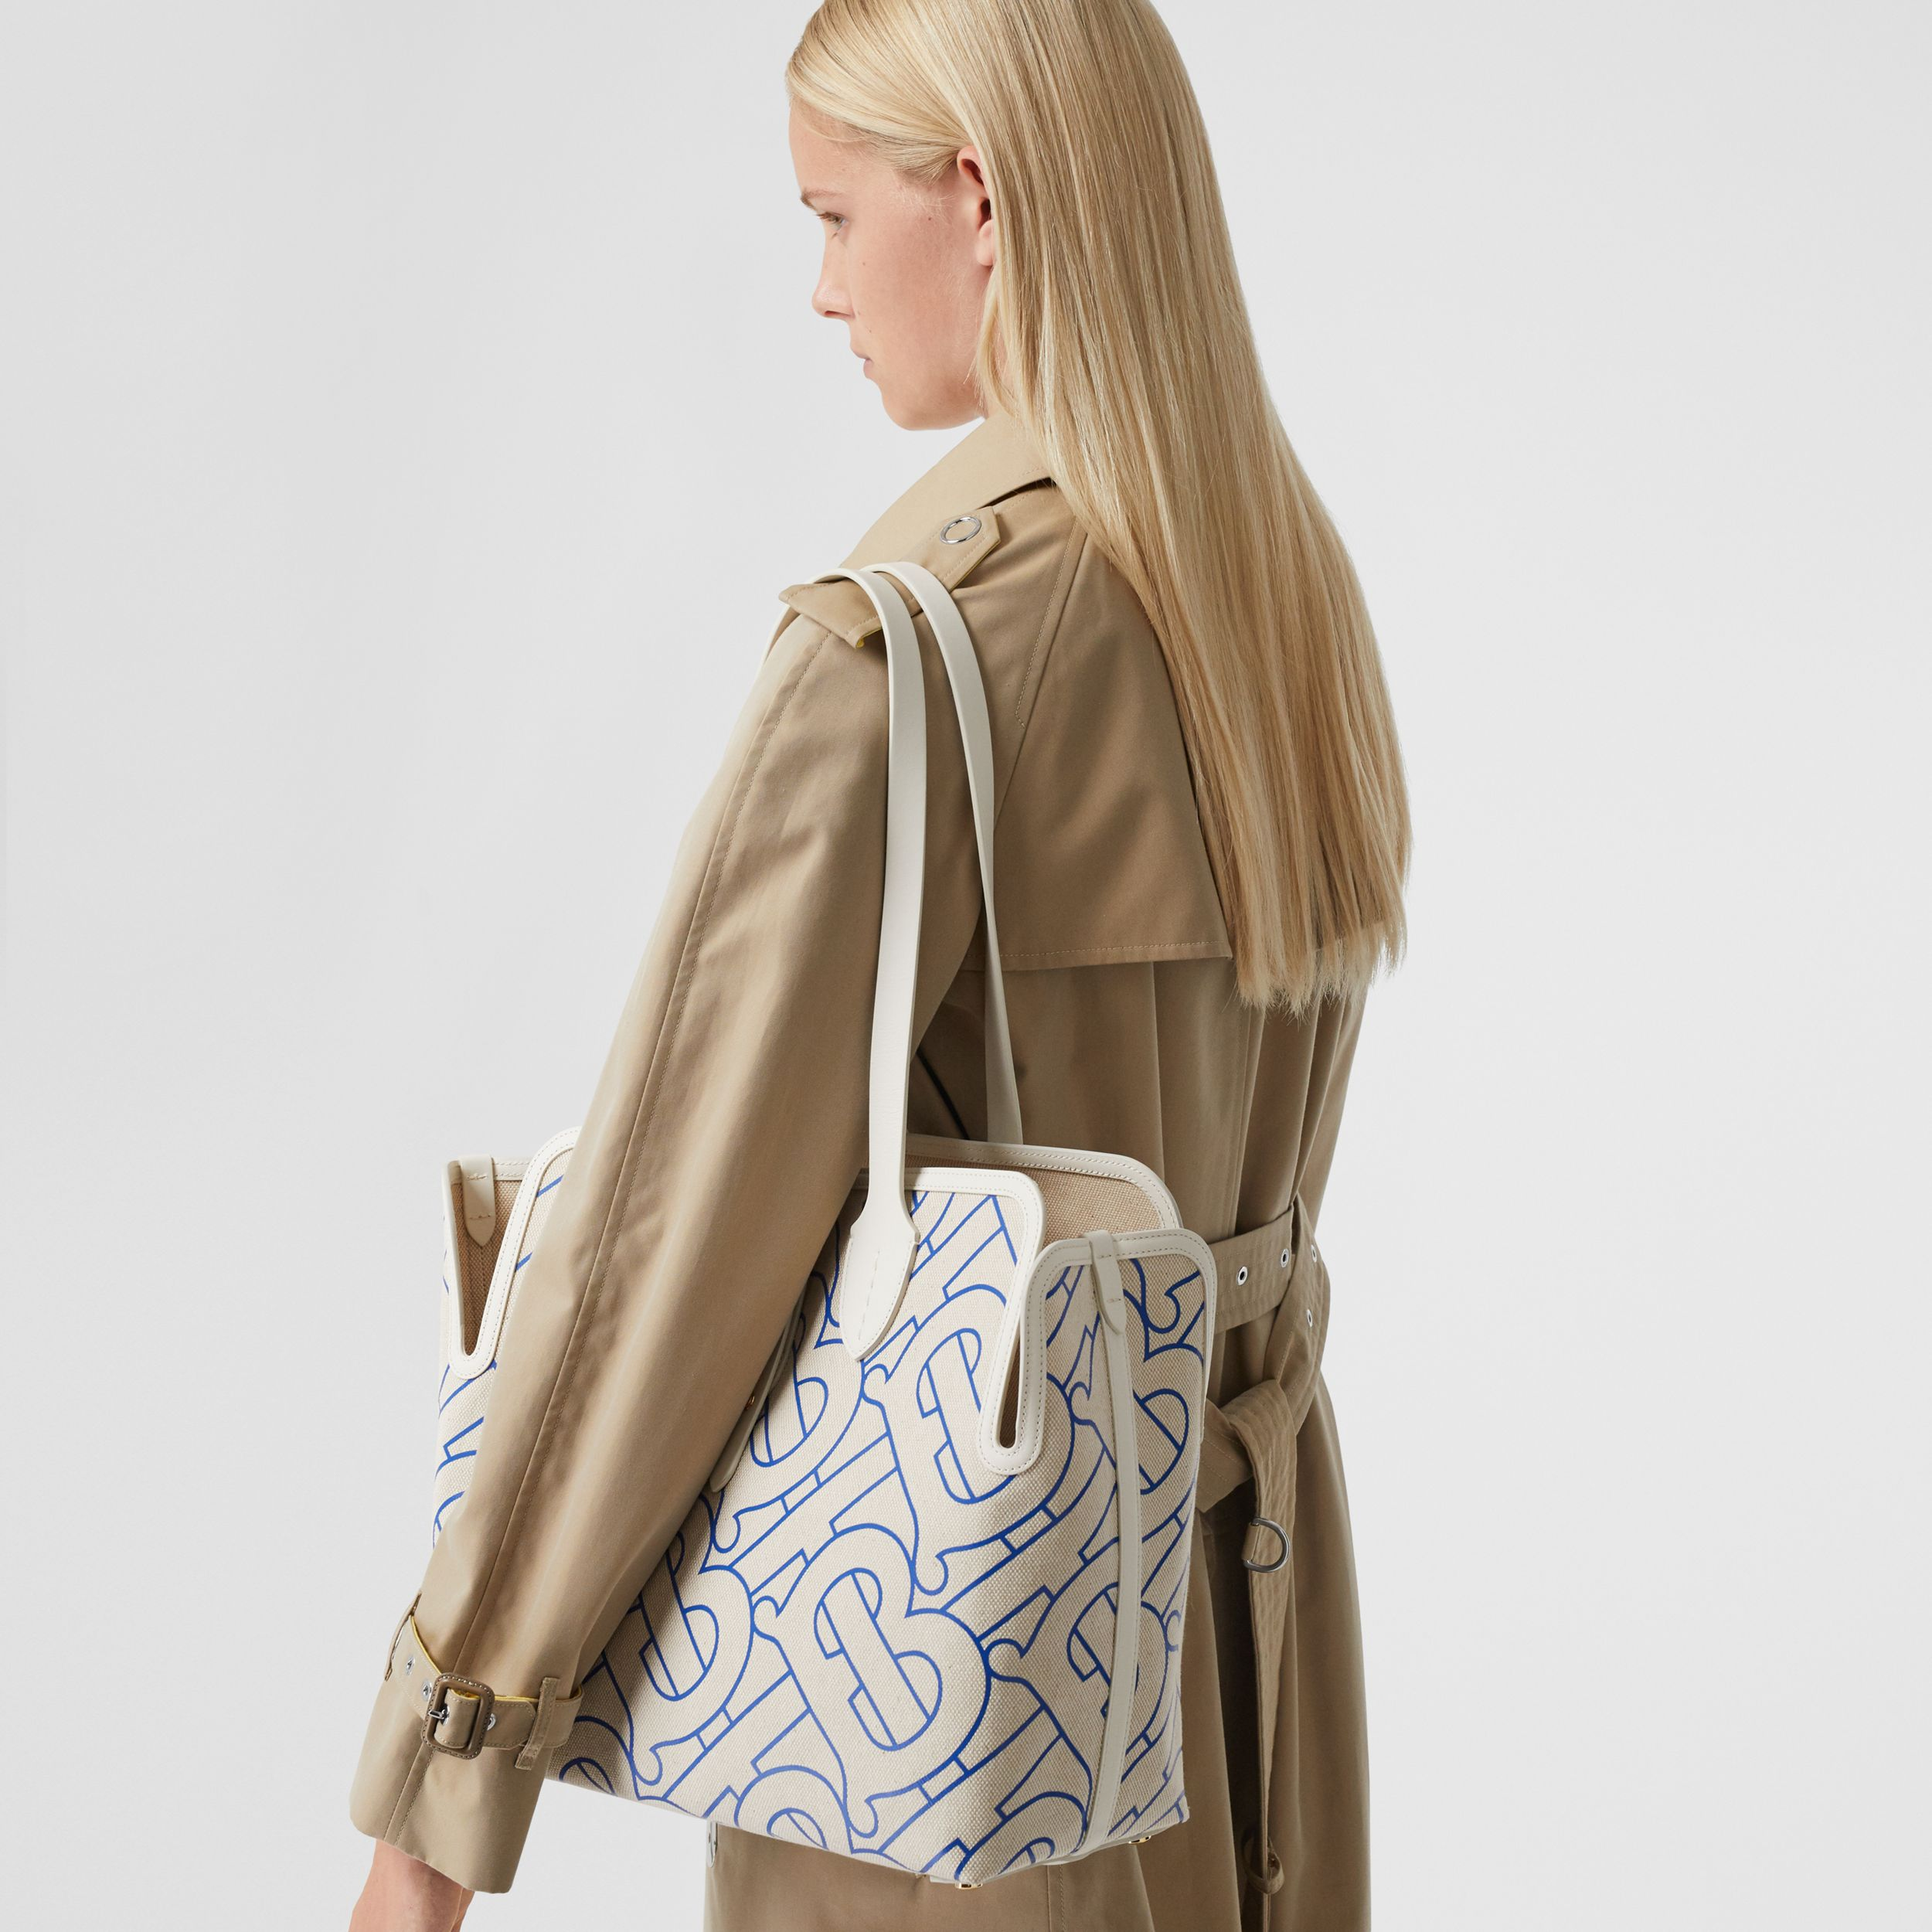 Sac The Belt moyen en toile de coton douce (Naturel/bleu) | Burberry Canada - 3